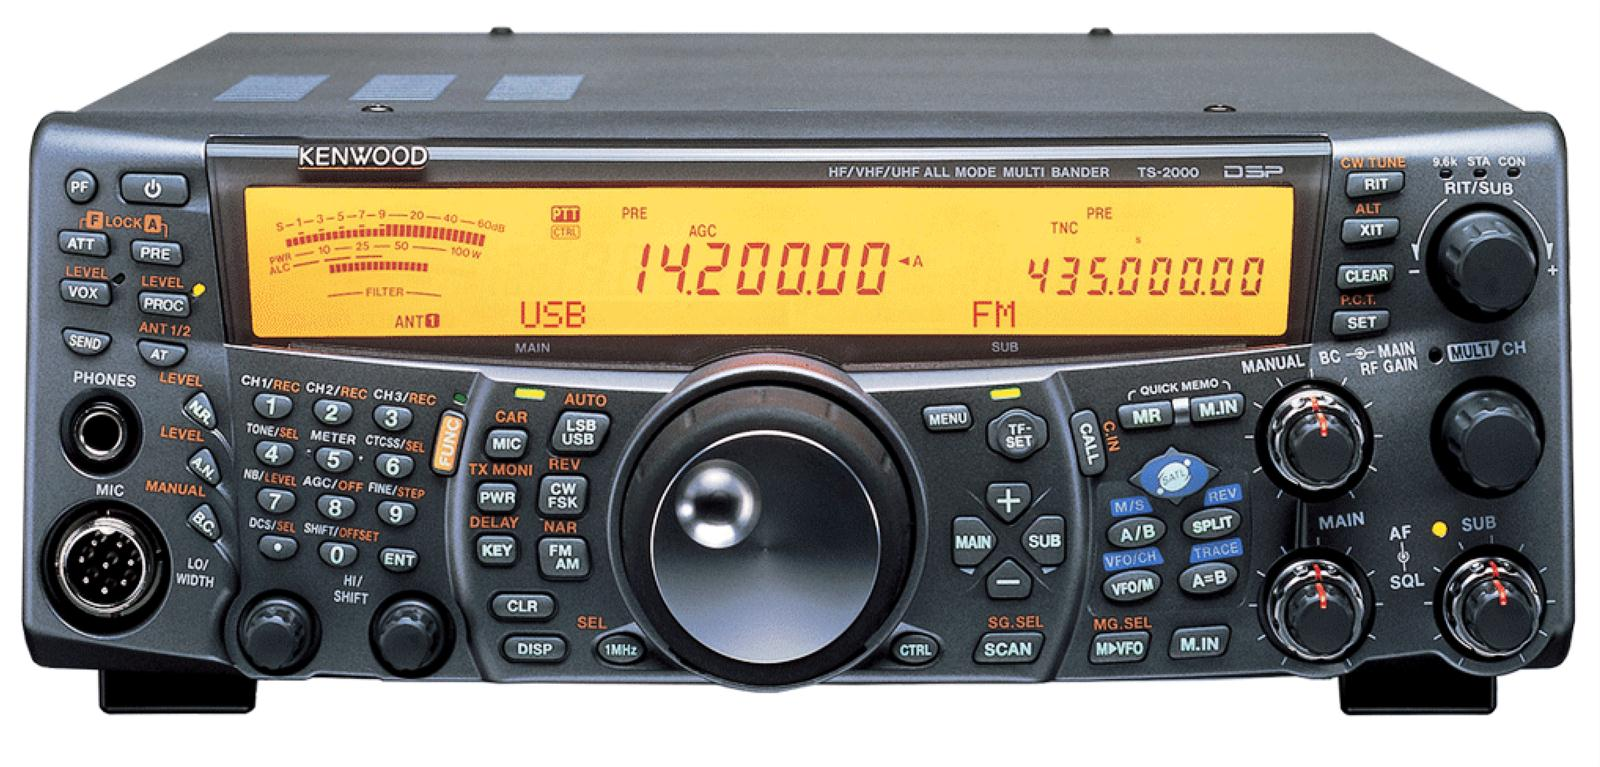 kenwood ts 2000 manual